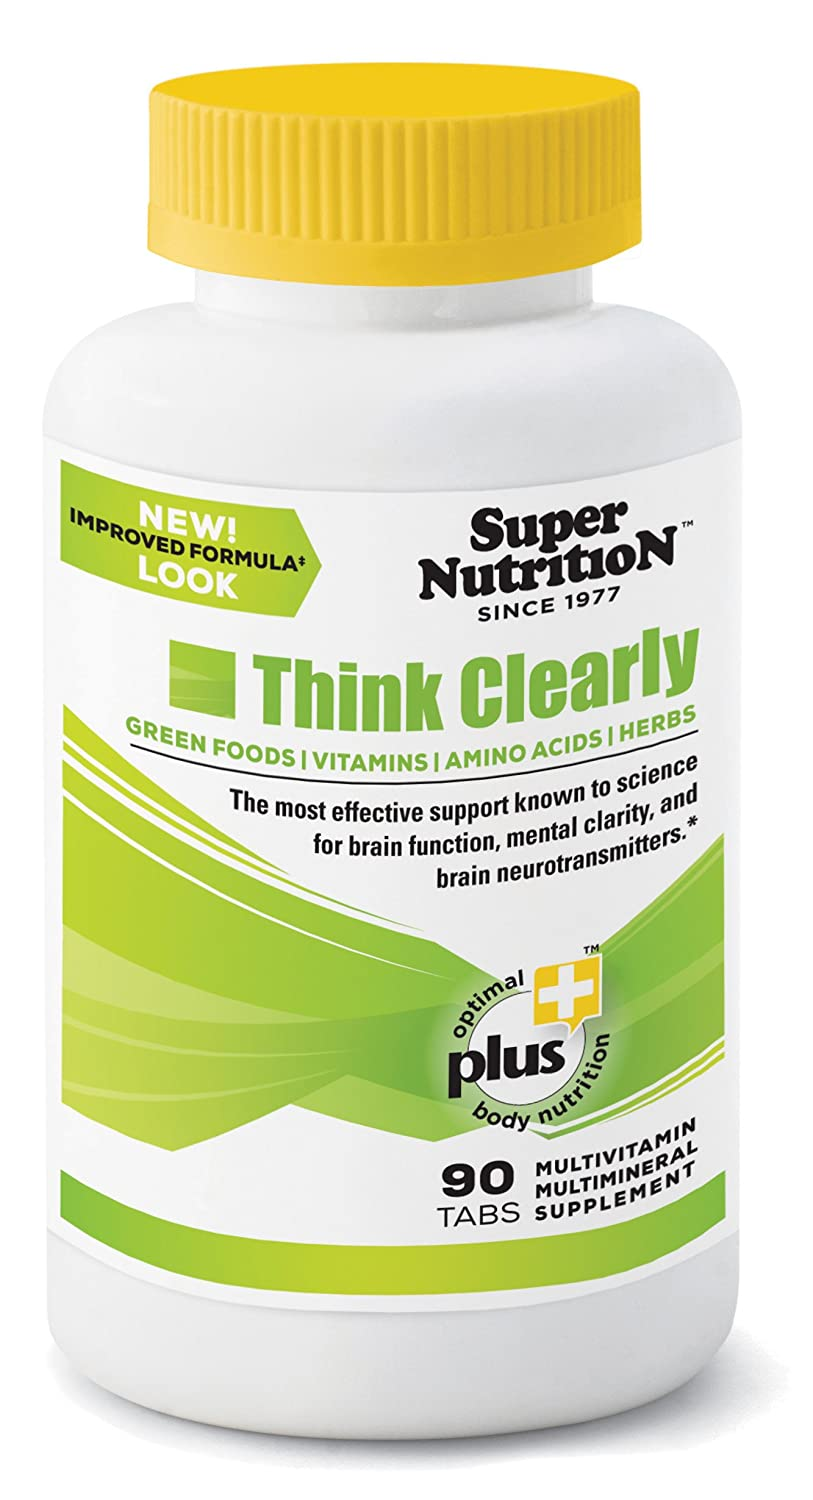 SuperNutrition Think Clearly, 90 Day Supply Best Value Pack